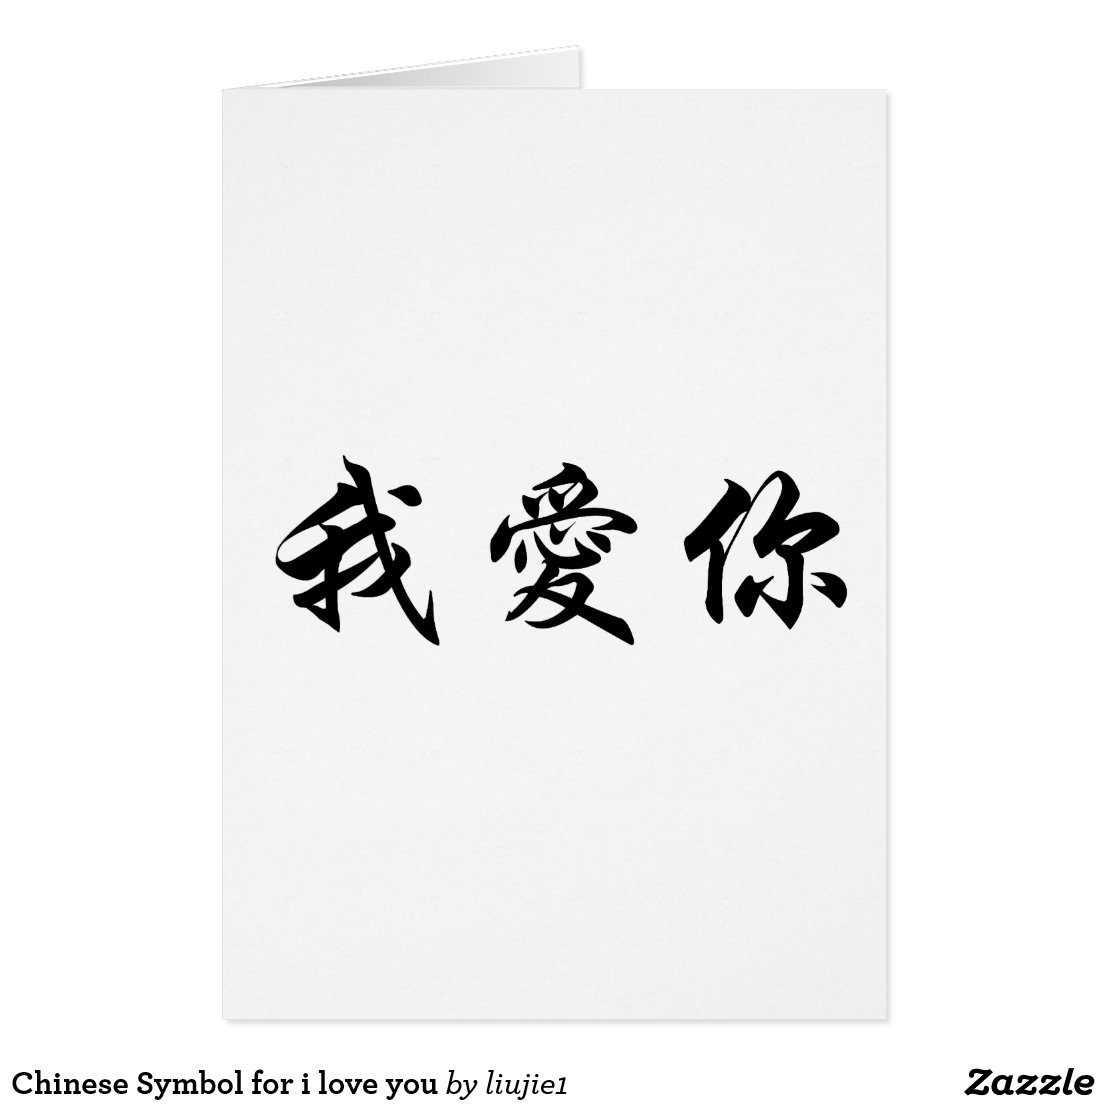 Chinese Writing For Love College Paper Help Dztermpapervigi